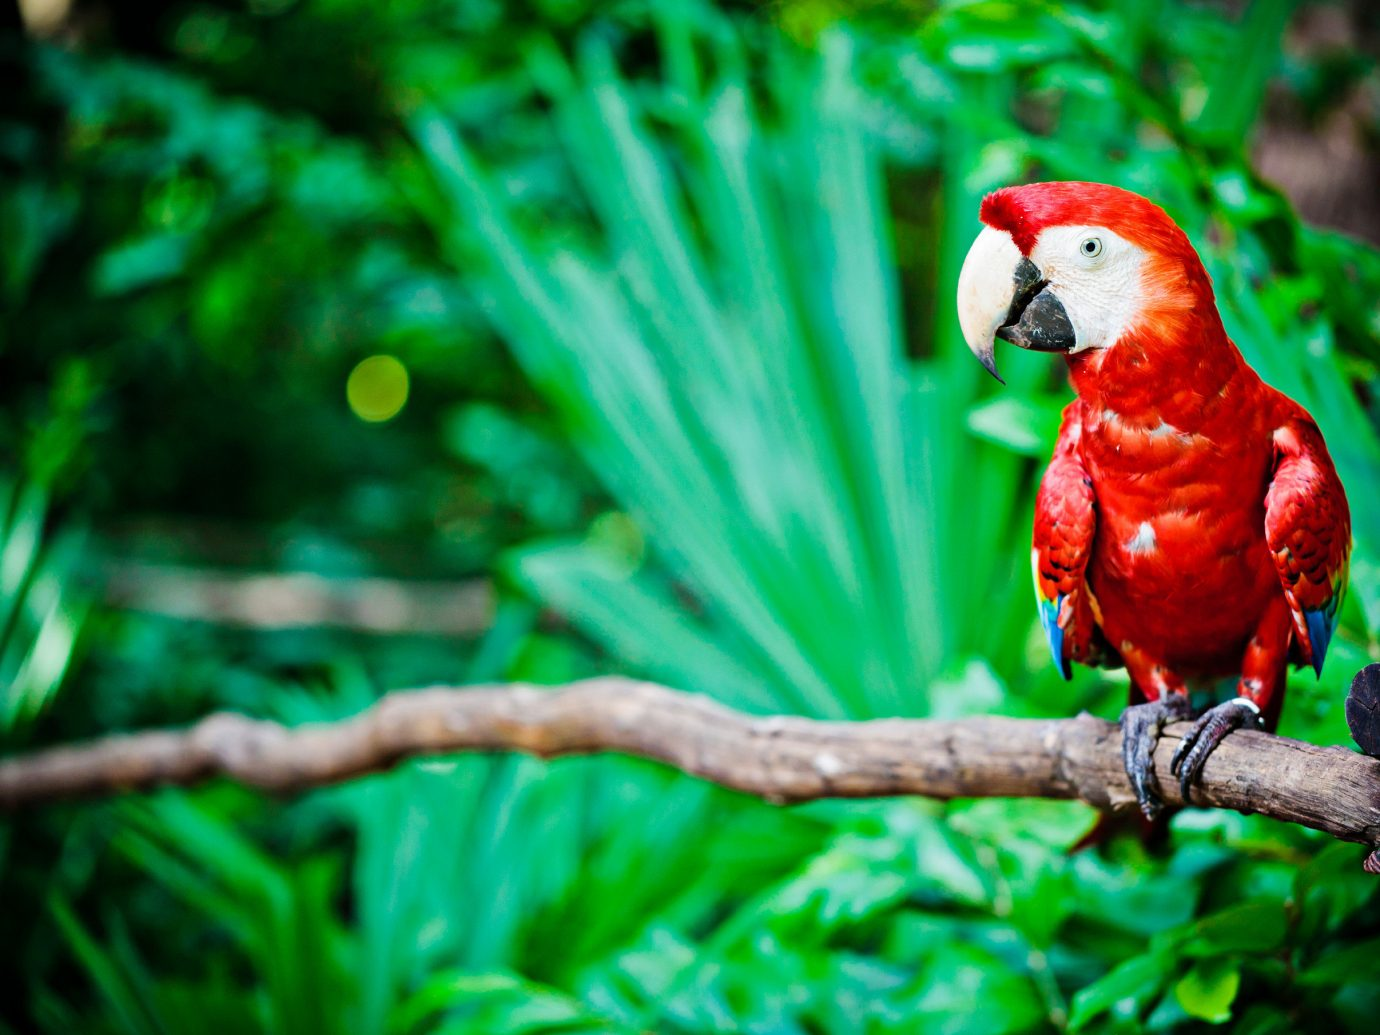 Hotels tree outdoor sitting parrot animal Bird Nature green beak vertebrate perched branch macaw fauna red Wildlife parakeet colorful Jungle lorikeet colored